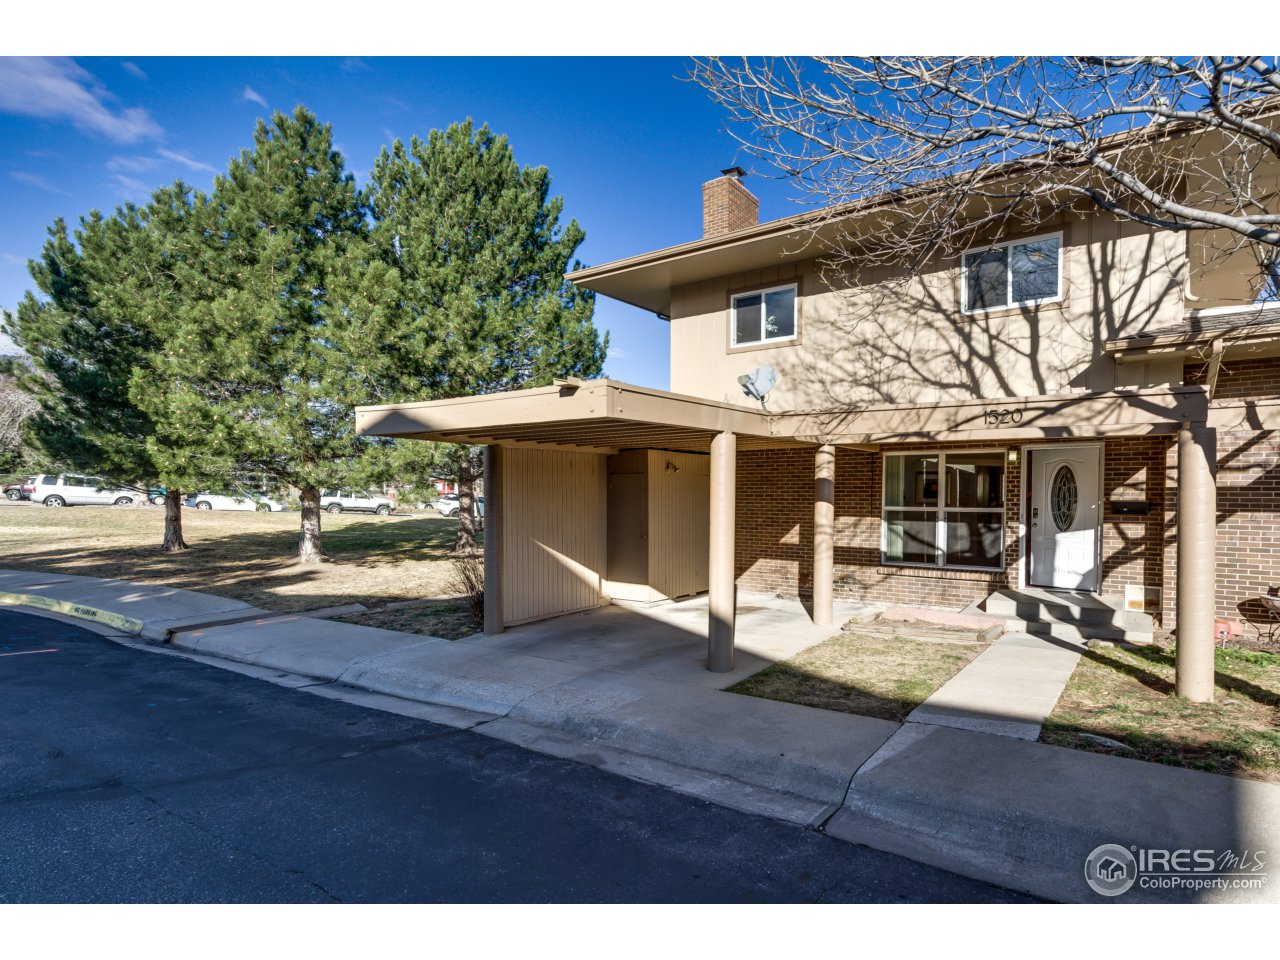 1520 Greenbriar Blvd, Boulder CO 80305